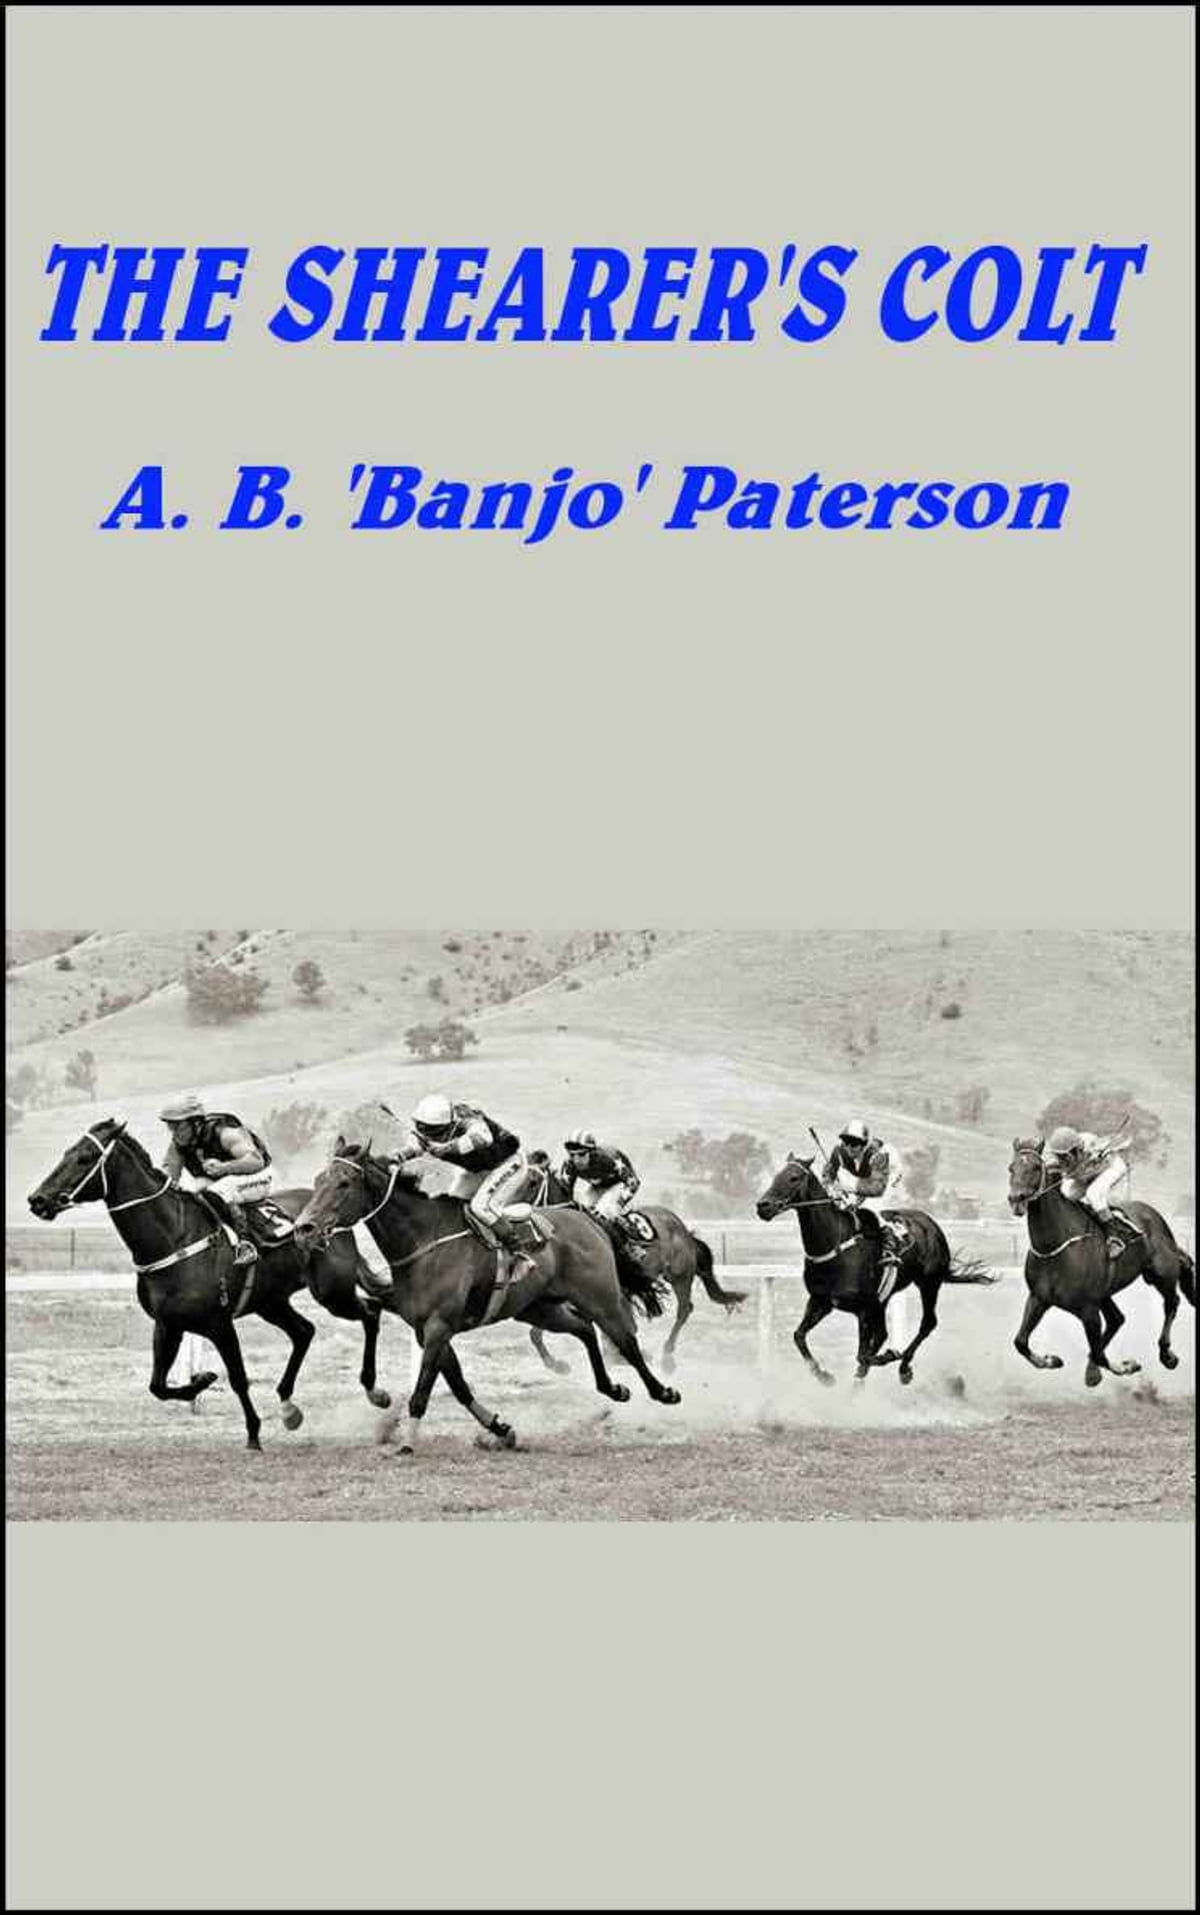 The shearers colt ebook by a b banjo paterson 1230000094449 the shearers colt ebook by a b banjo paterson 1230000094449 rakuten kobo fandeluxe Document